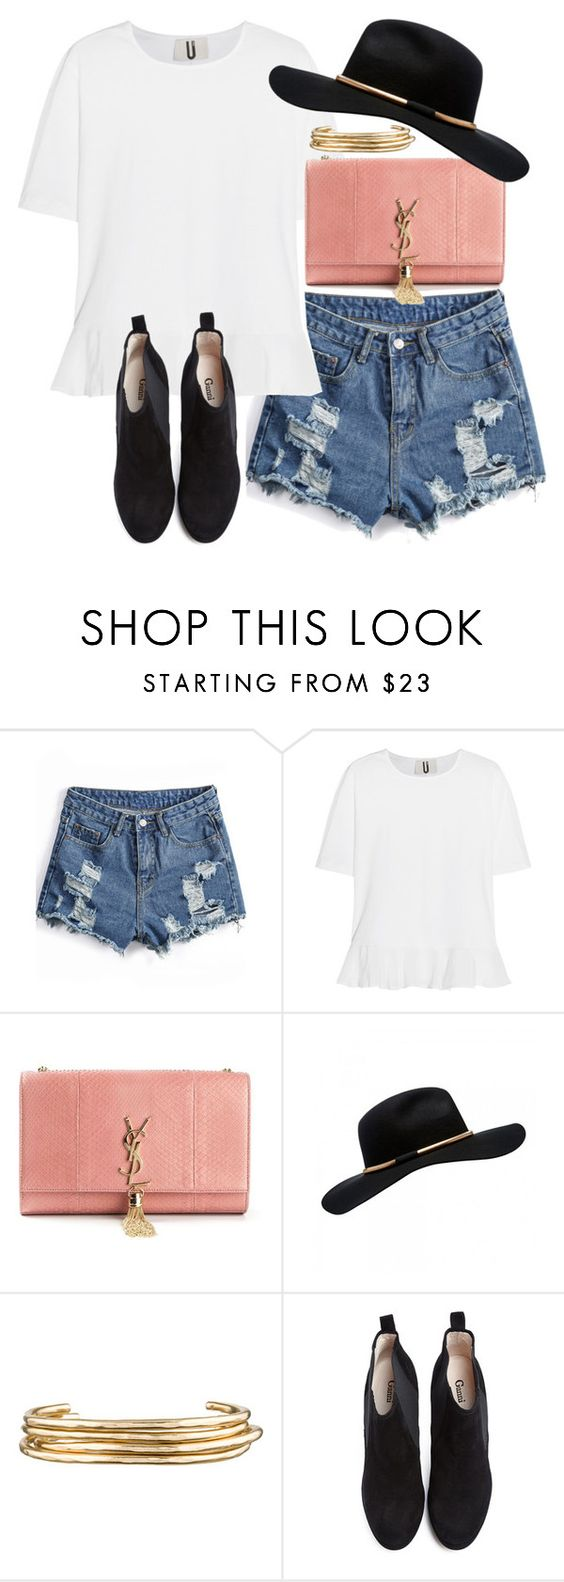 """""""Untitled #5966"""" by ashley-r0se-xo ❤ liked on Polyvore featuring Topshop Unique, Yves Saint Laurent, Forever New, Jennifer Fisher, Ganni, women's clothing, women, female, woman and misses"""